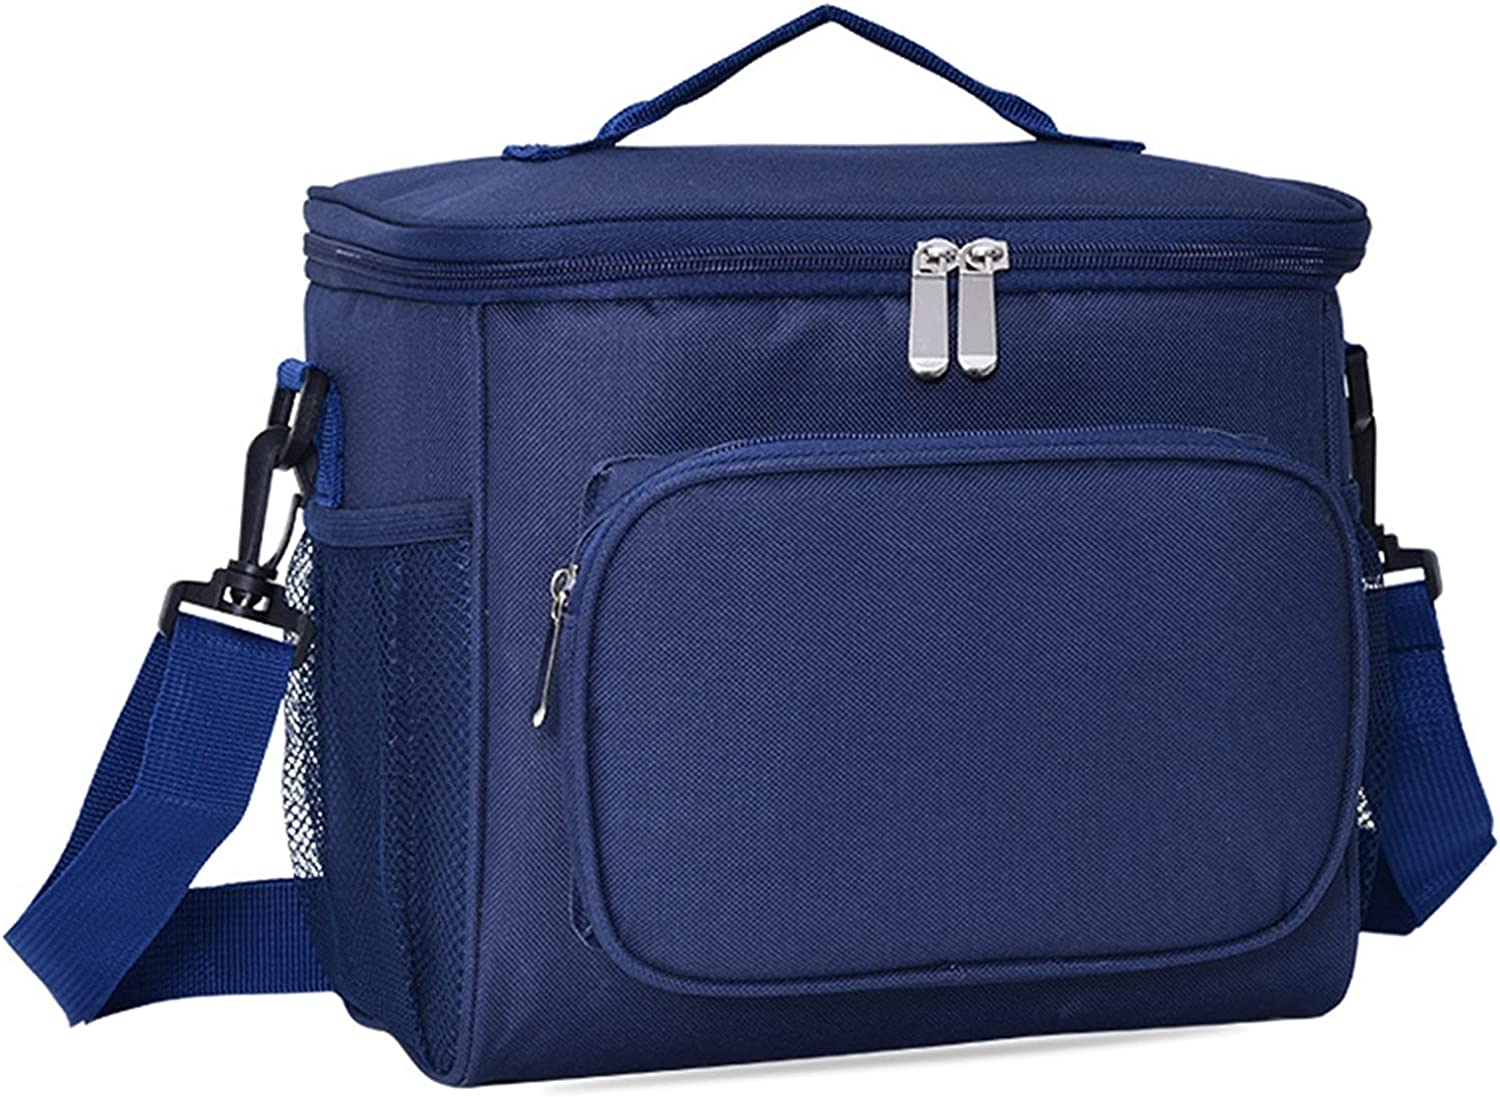 ALUNVA Thermal Denver Mall Insulated Cooler Bags Women Lunc Picnic Men Al sold out. Large